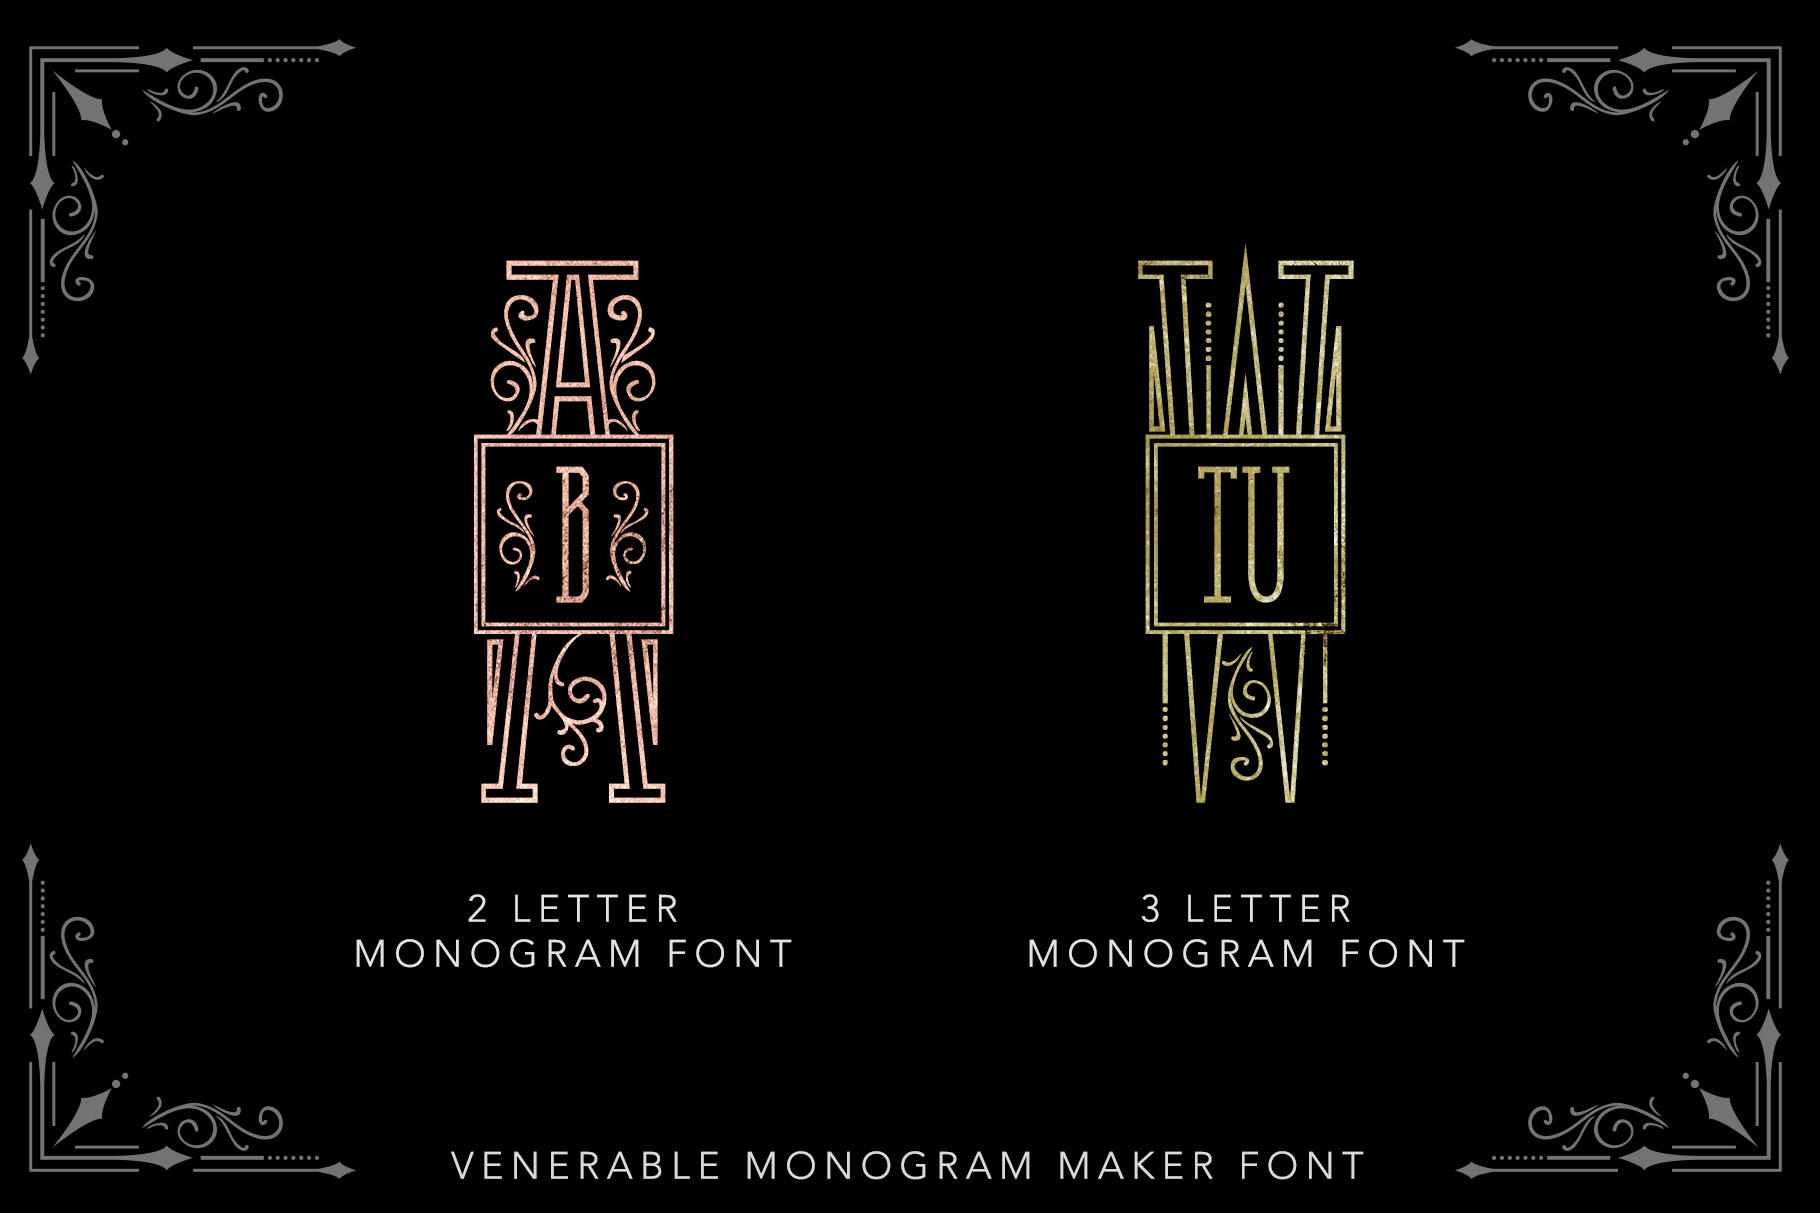 Venerable Monogram Maker Font example image 5